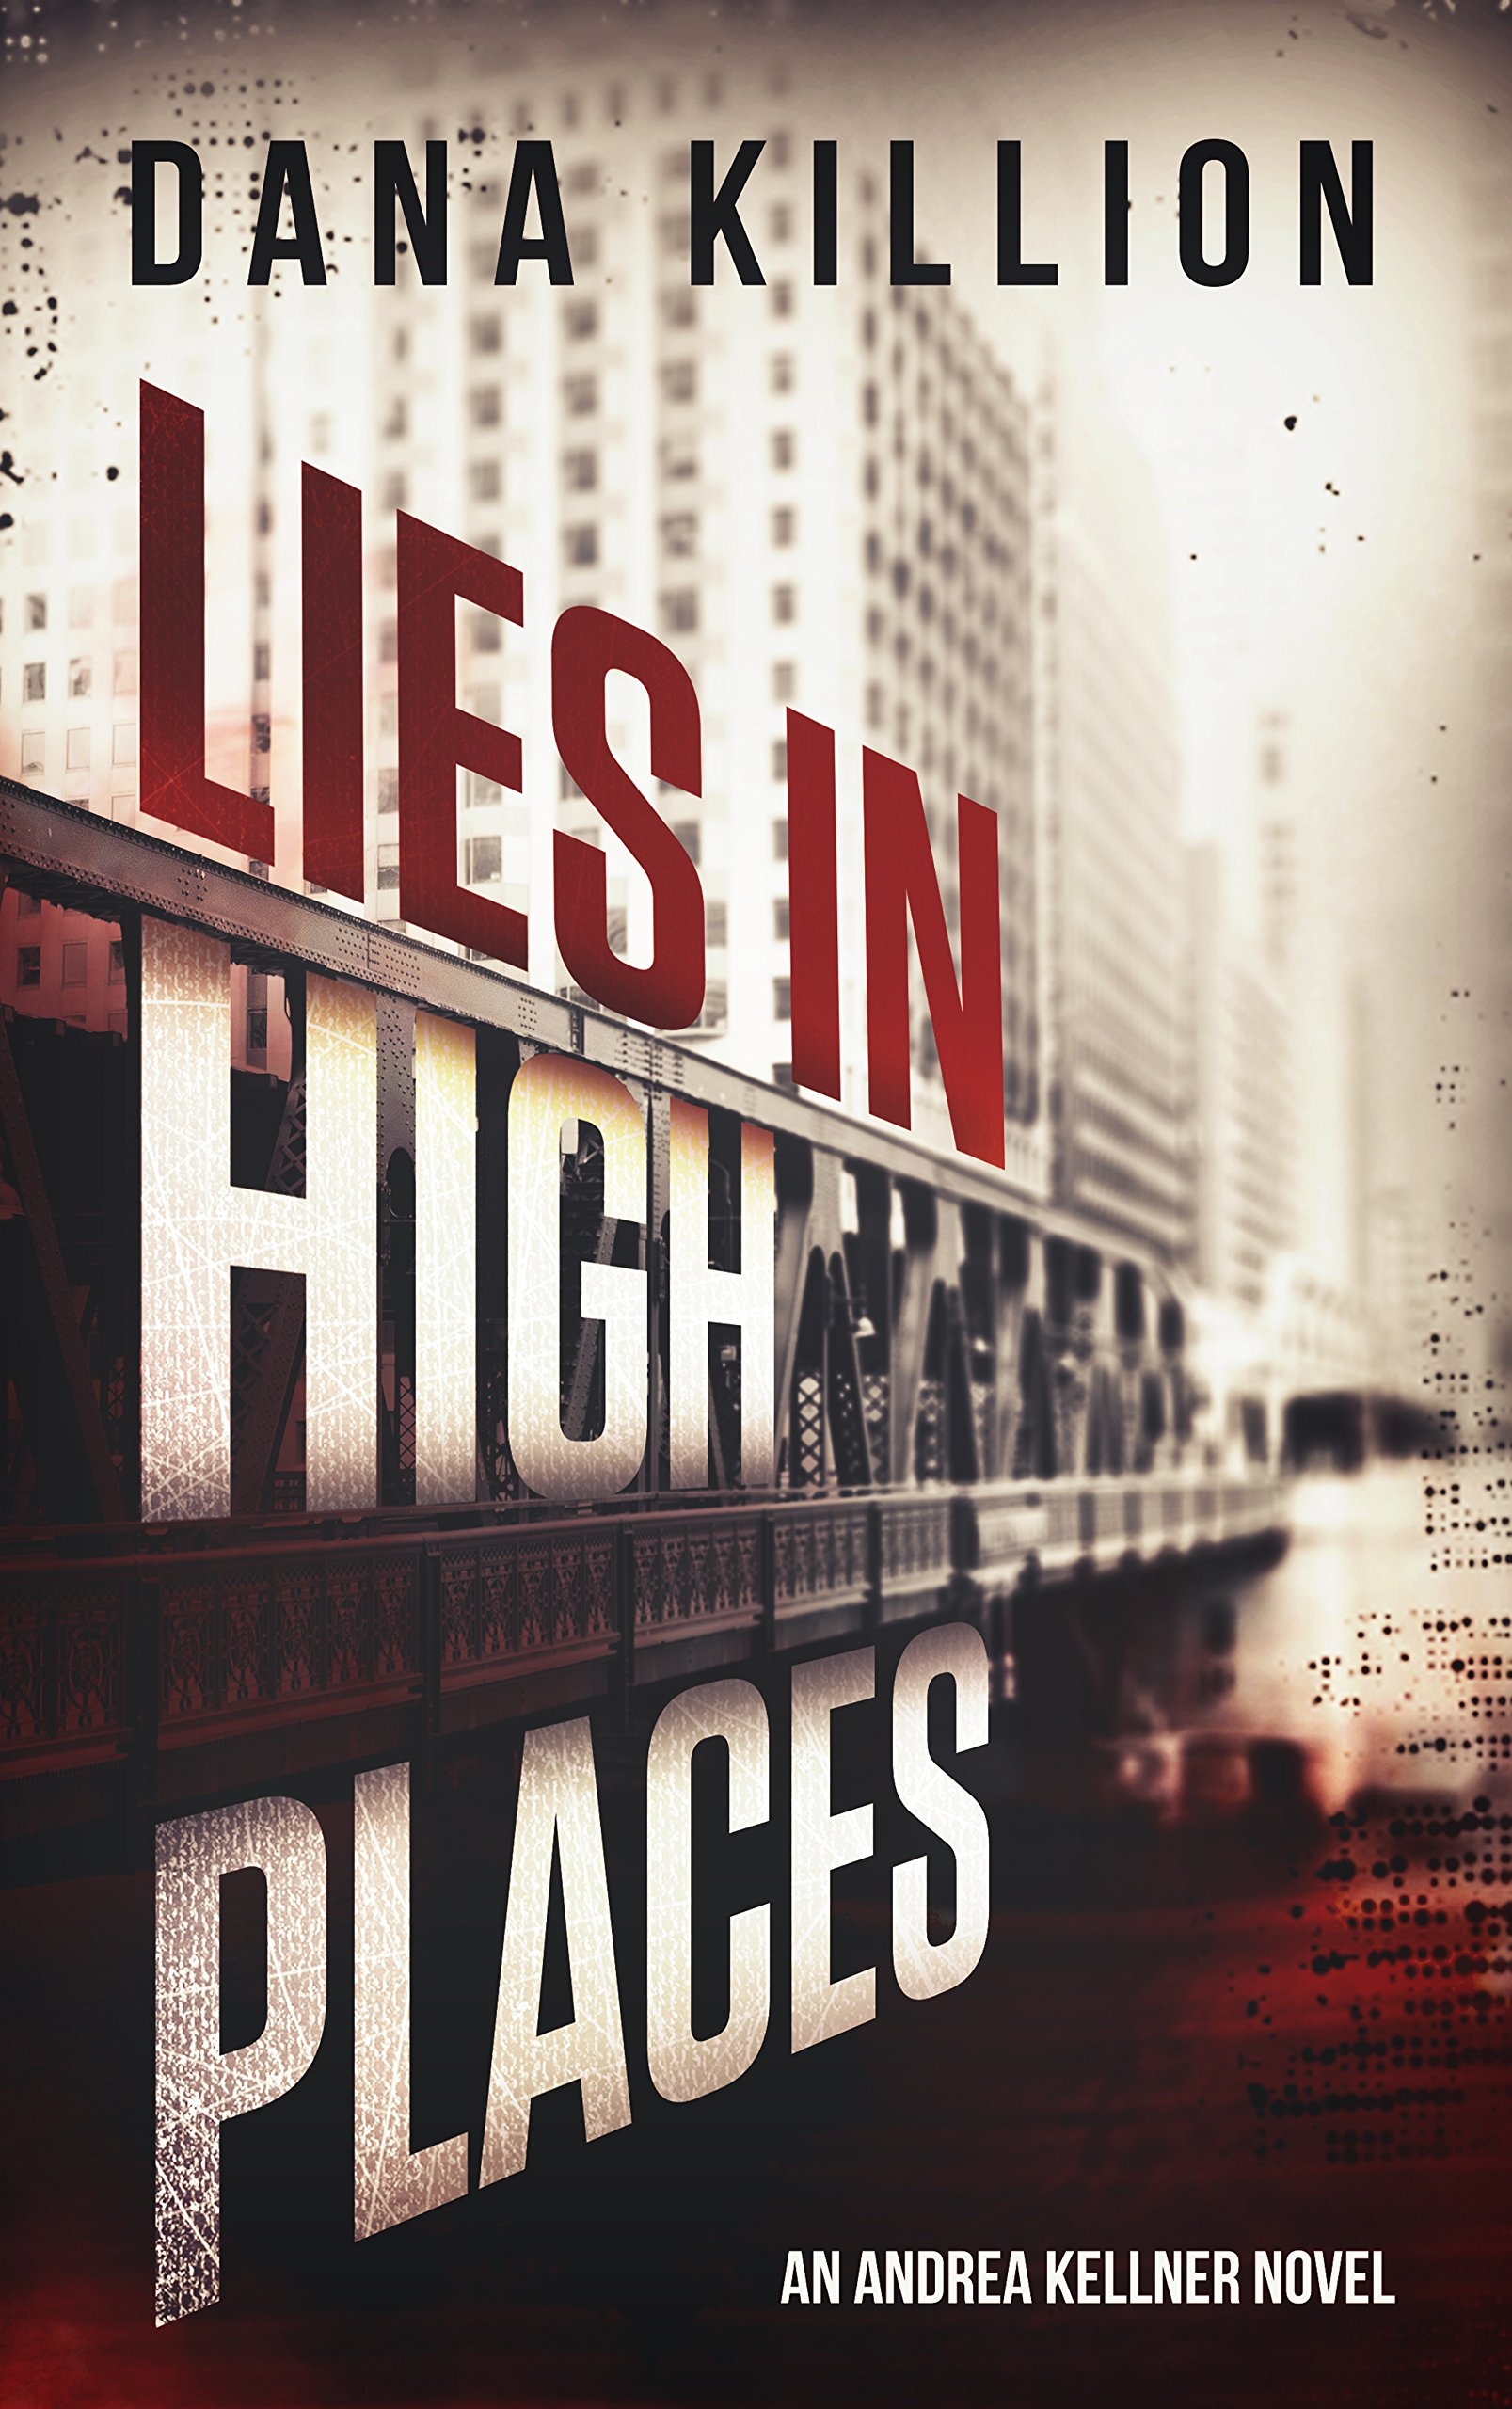 Lies in High Places (Andrea Kellner Book 1)